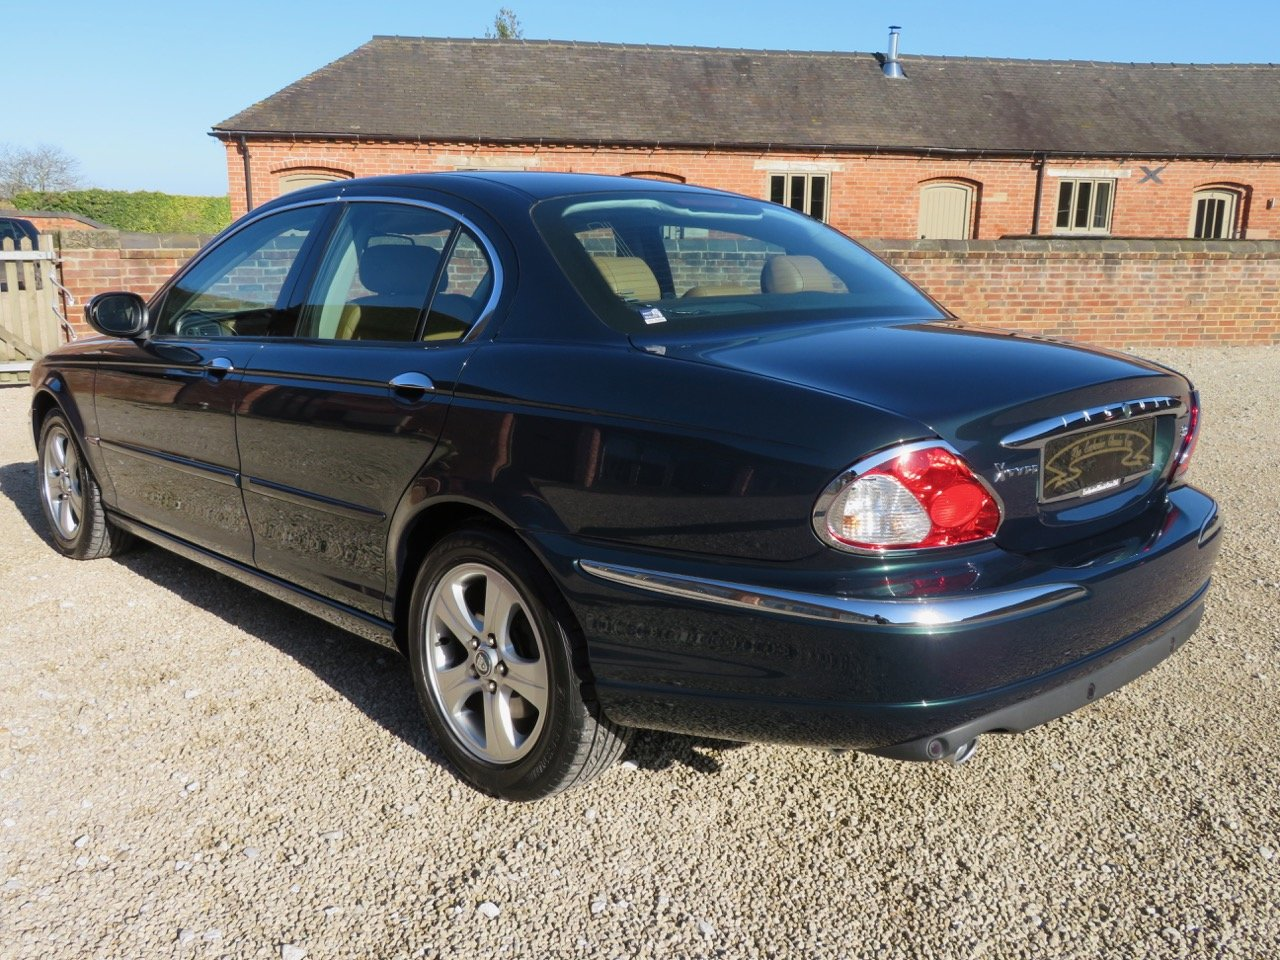 JAGUAR X-TYPE 3.0 V6 AUTO SE 2002 18K MILES FROM NEW 1 OWNER For Sale (picture 6 of 6)